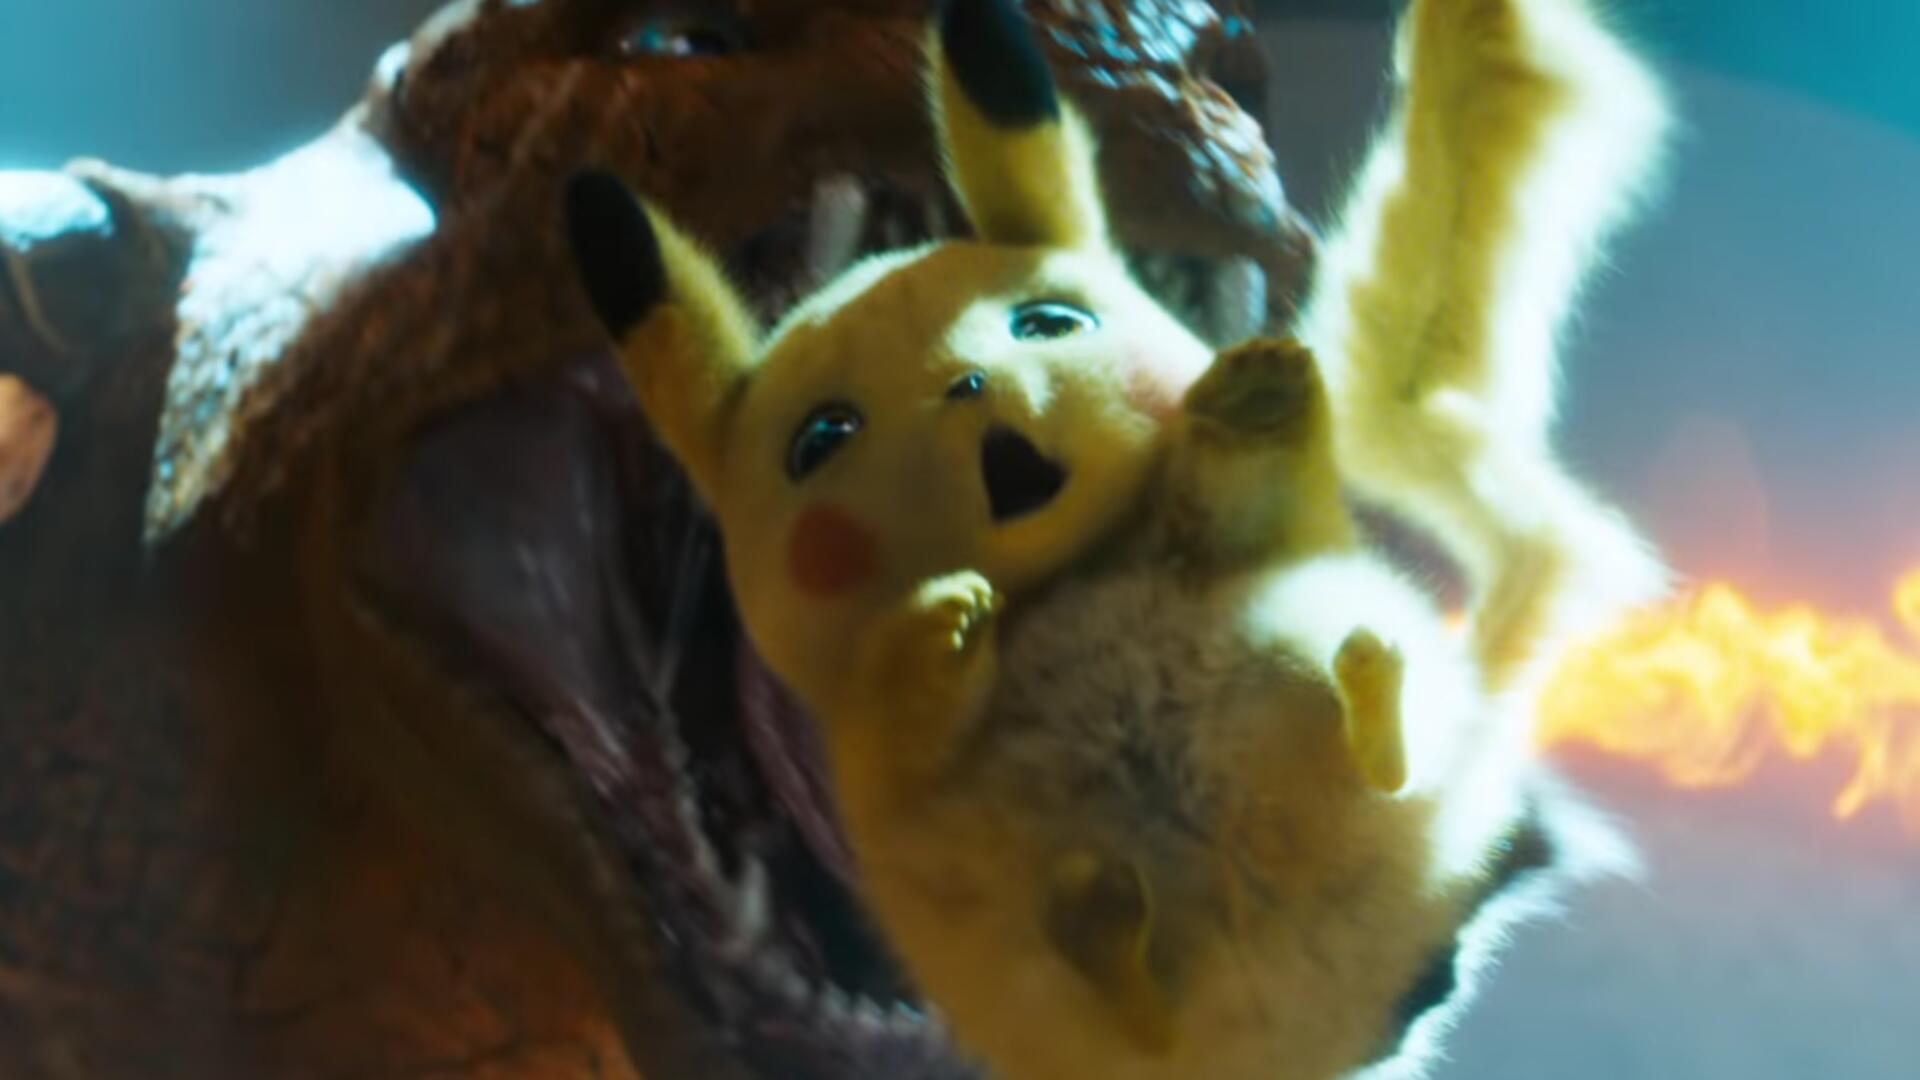 The Detective Pikachu Movie is Getting a Sweet Graphic Novel Adaptation